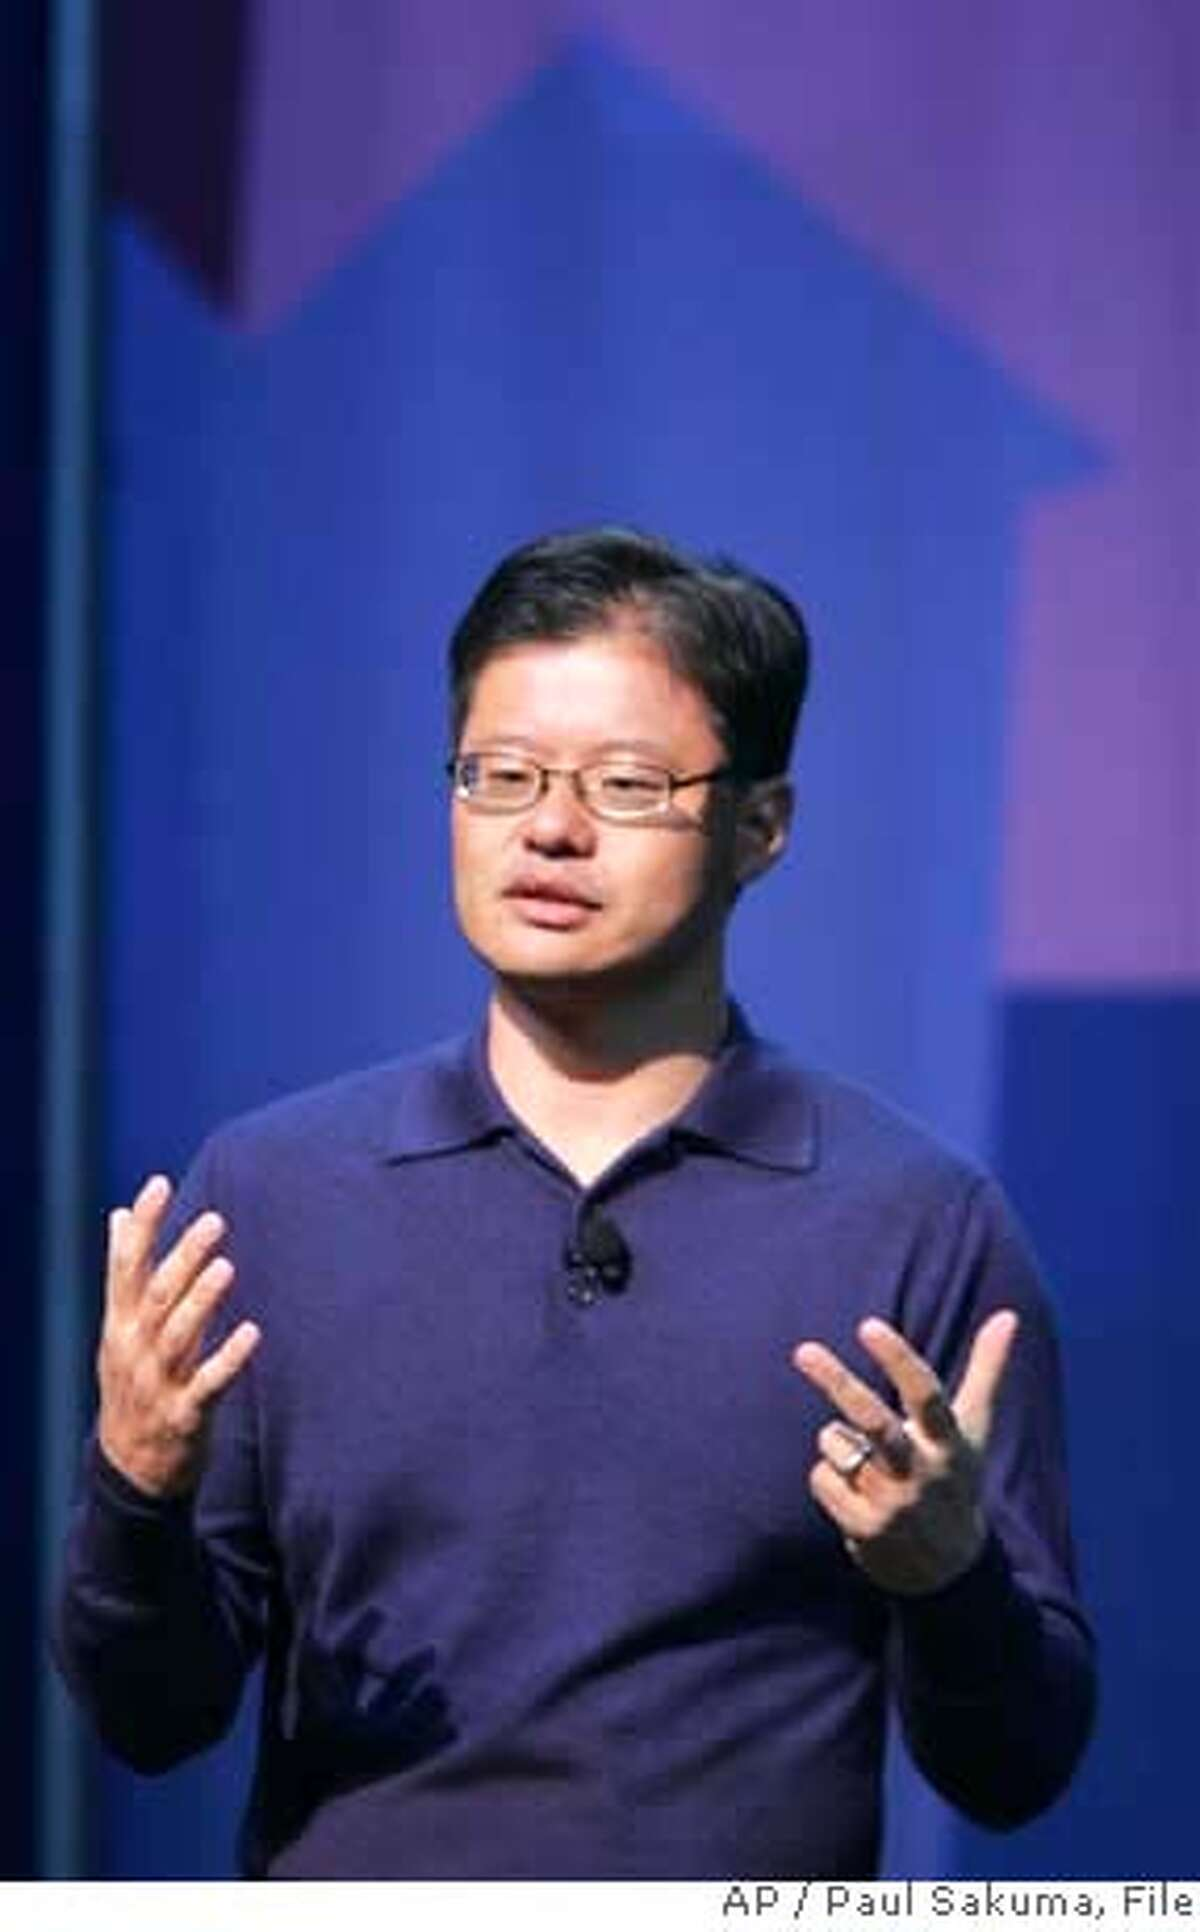 ###Live Caption:** FILE ** Yahoo CEO Jerry Yang gives a keynote address at the Consumer Electronics Show (CES) in Las Vegas, in this Jan. 7, 2008 file photo. Yahoo Inc. Chief Executive Jerry Yang told employees Wednesday Feb. 6, 2008, that the struggling Internet pioneer is still examining ways to avoid a takeover by rival Microsoft Corp. (AP Photo/Paul Sakuma, file)###Caption History:** FILE ** Yahoo CEO Jerry Yang gives a keynote address at the Consumer Electronics Show (CES) in Las Vegas, in this Jan. 7, 2008 file photo. Yahoo Inc. Chief Executive Jerry Yang told employees Wednesday Feb. 6, 2008, that the struggling Internet pioneer is still examining ways to avoid a takeover by rival Microsoft Corp. (AP Photo/Paul Sakuma, file) Ran on: 02-10-2008 After spurning Microsofts merger offer, Yahoo will remain in its current form and headquarters. Ran on: 02-10-2008 After spurning Microsofts merger offer, Yahoo will remain in its current form and headquarters. Ran on: 05-04-2008 Steve Ballmer Ran on: 05-04-2008 Steve Ballmer###Notes:Jerry Yang###Special Instructions:A JAN. 7, 2008 FILE PHOTO.